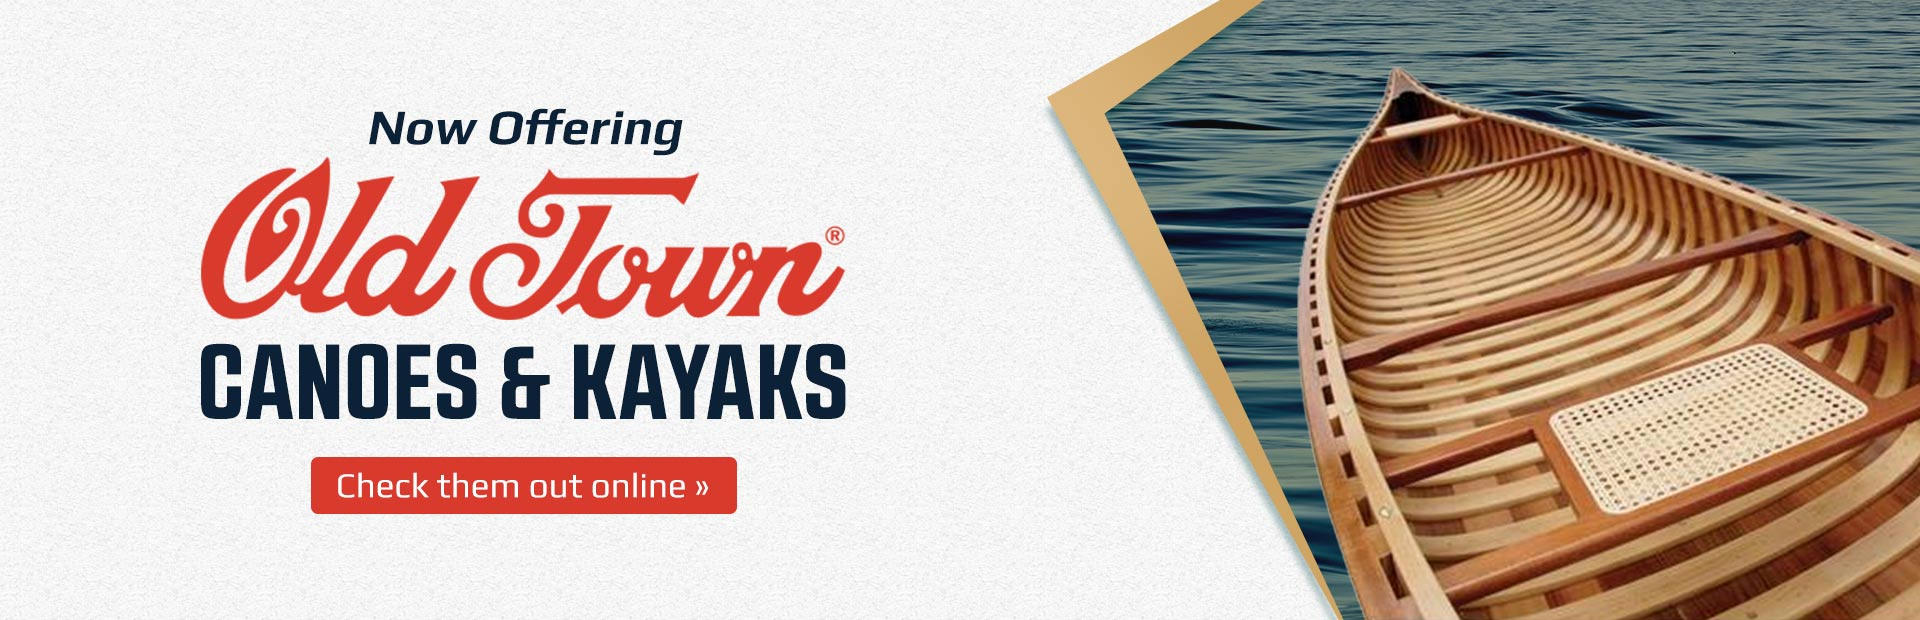 Now Offering Old Town Canoes & Kayaks: Click here to check them out online.